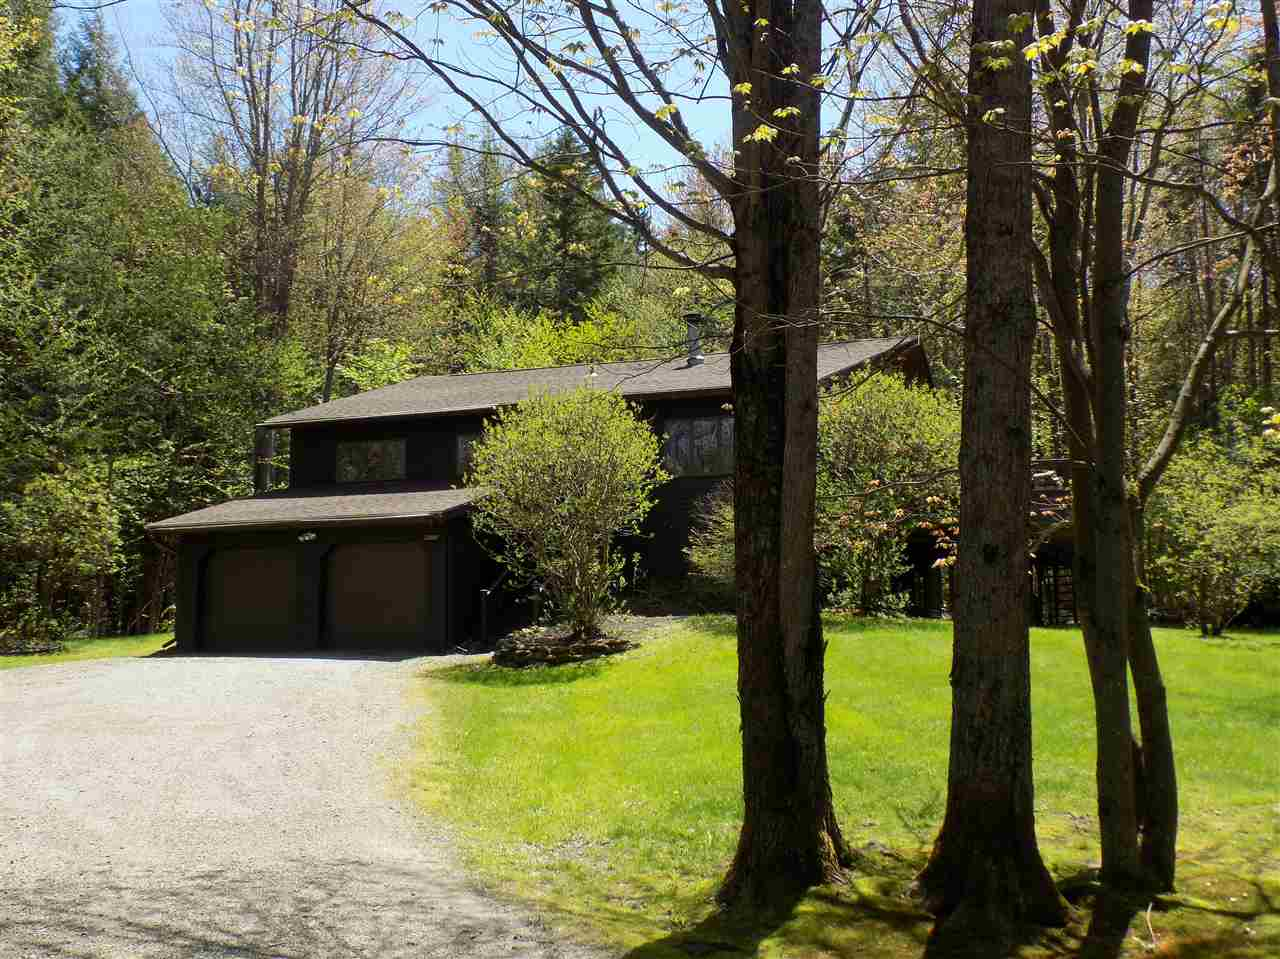 4694443 - 4055 Elmore Mountain Road Elmore VT, 05661